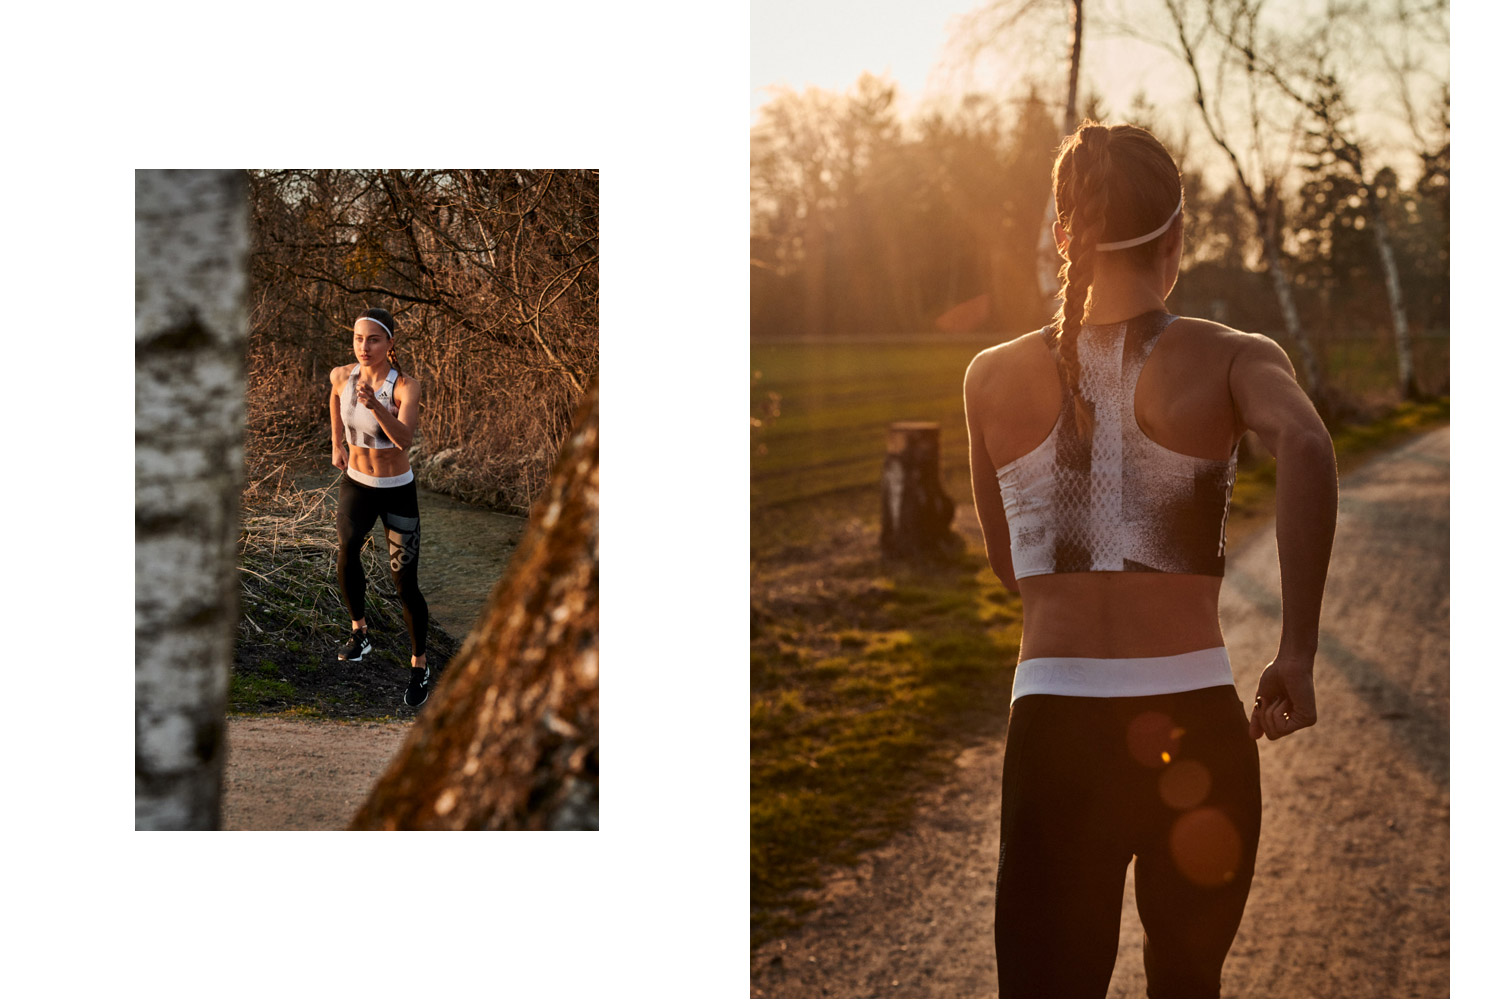 astrid m obert photography presents adidas by Stella McCartney with paulina_h fitness girl sport running